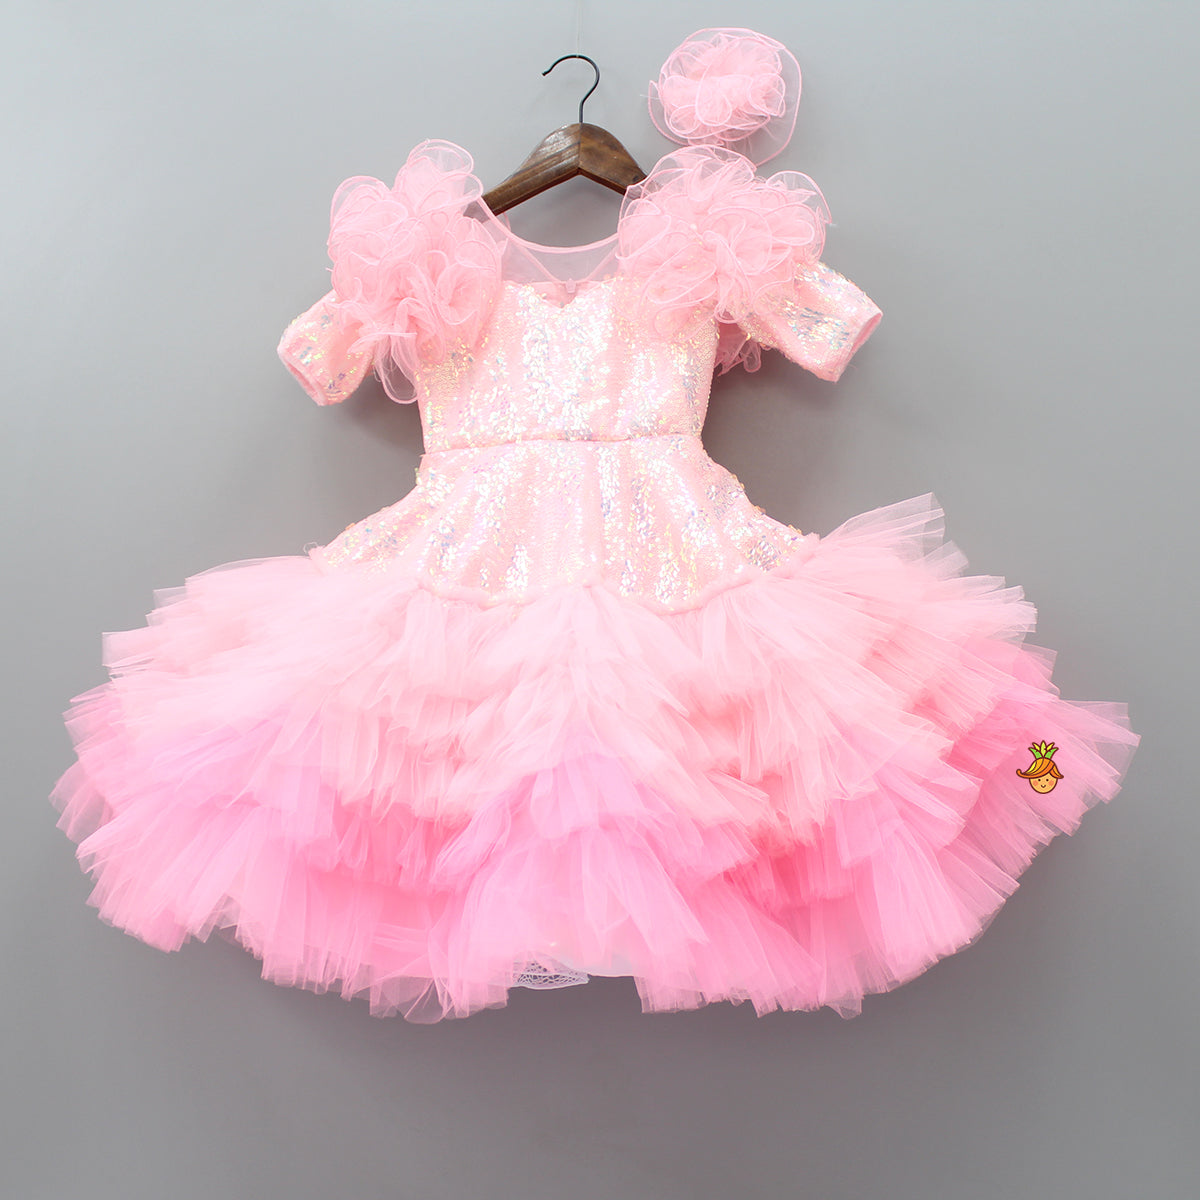 Pre Order: Sequin And Ruffle Frill Pink And Peach Gown With Hair Clip